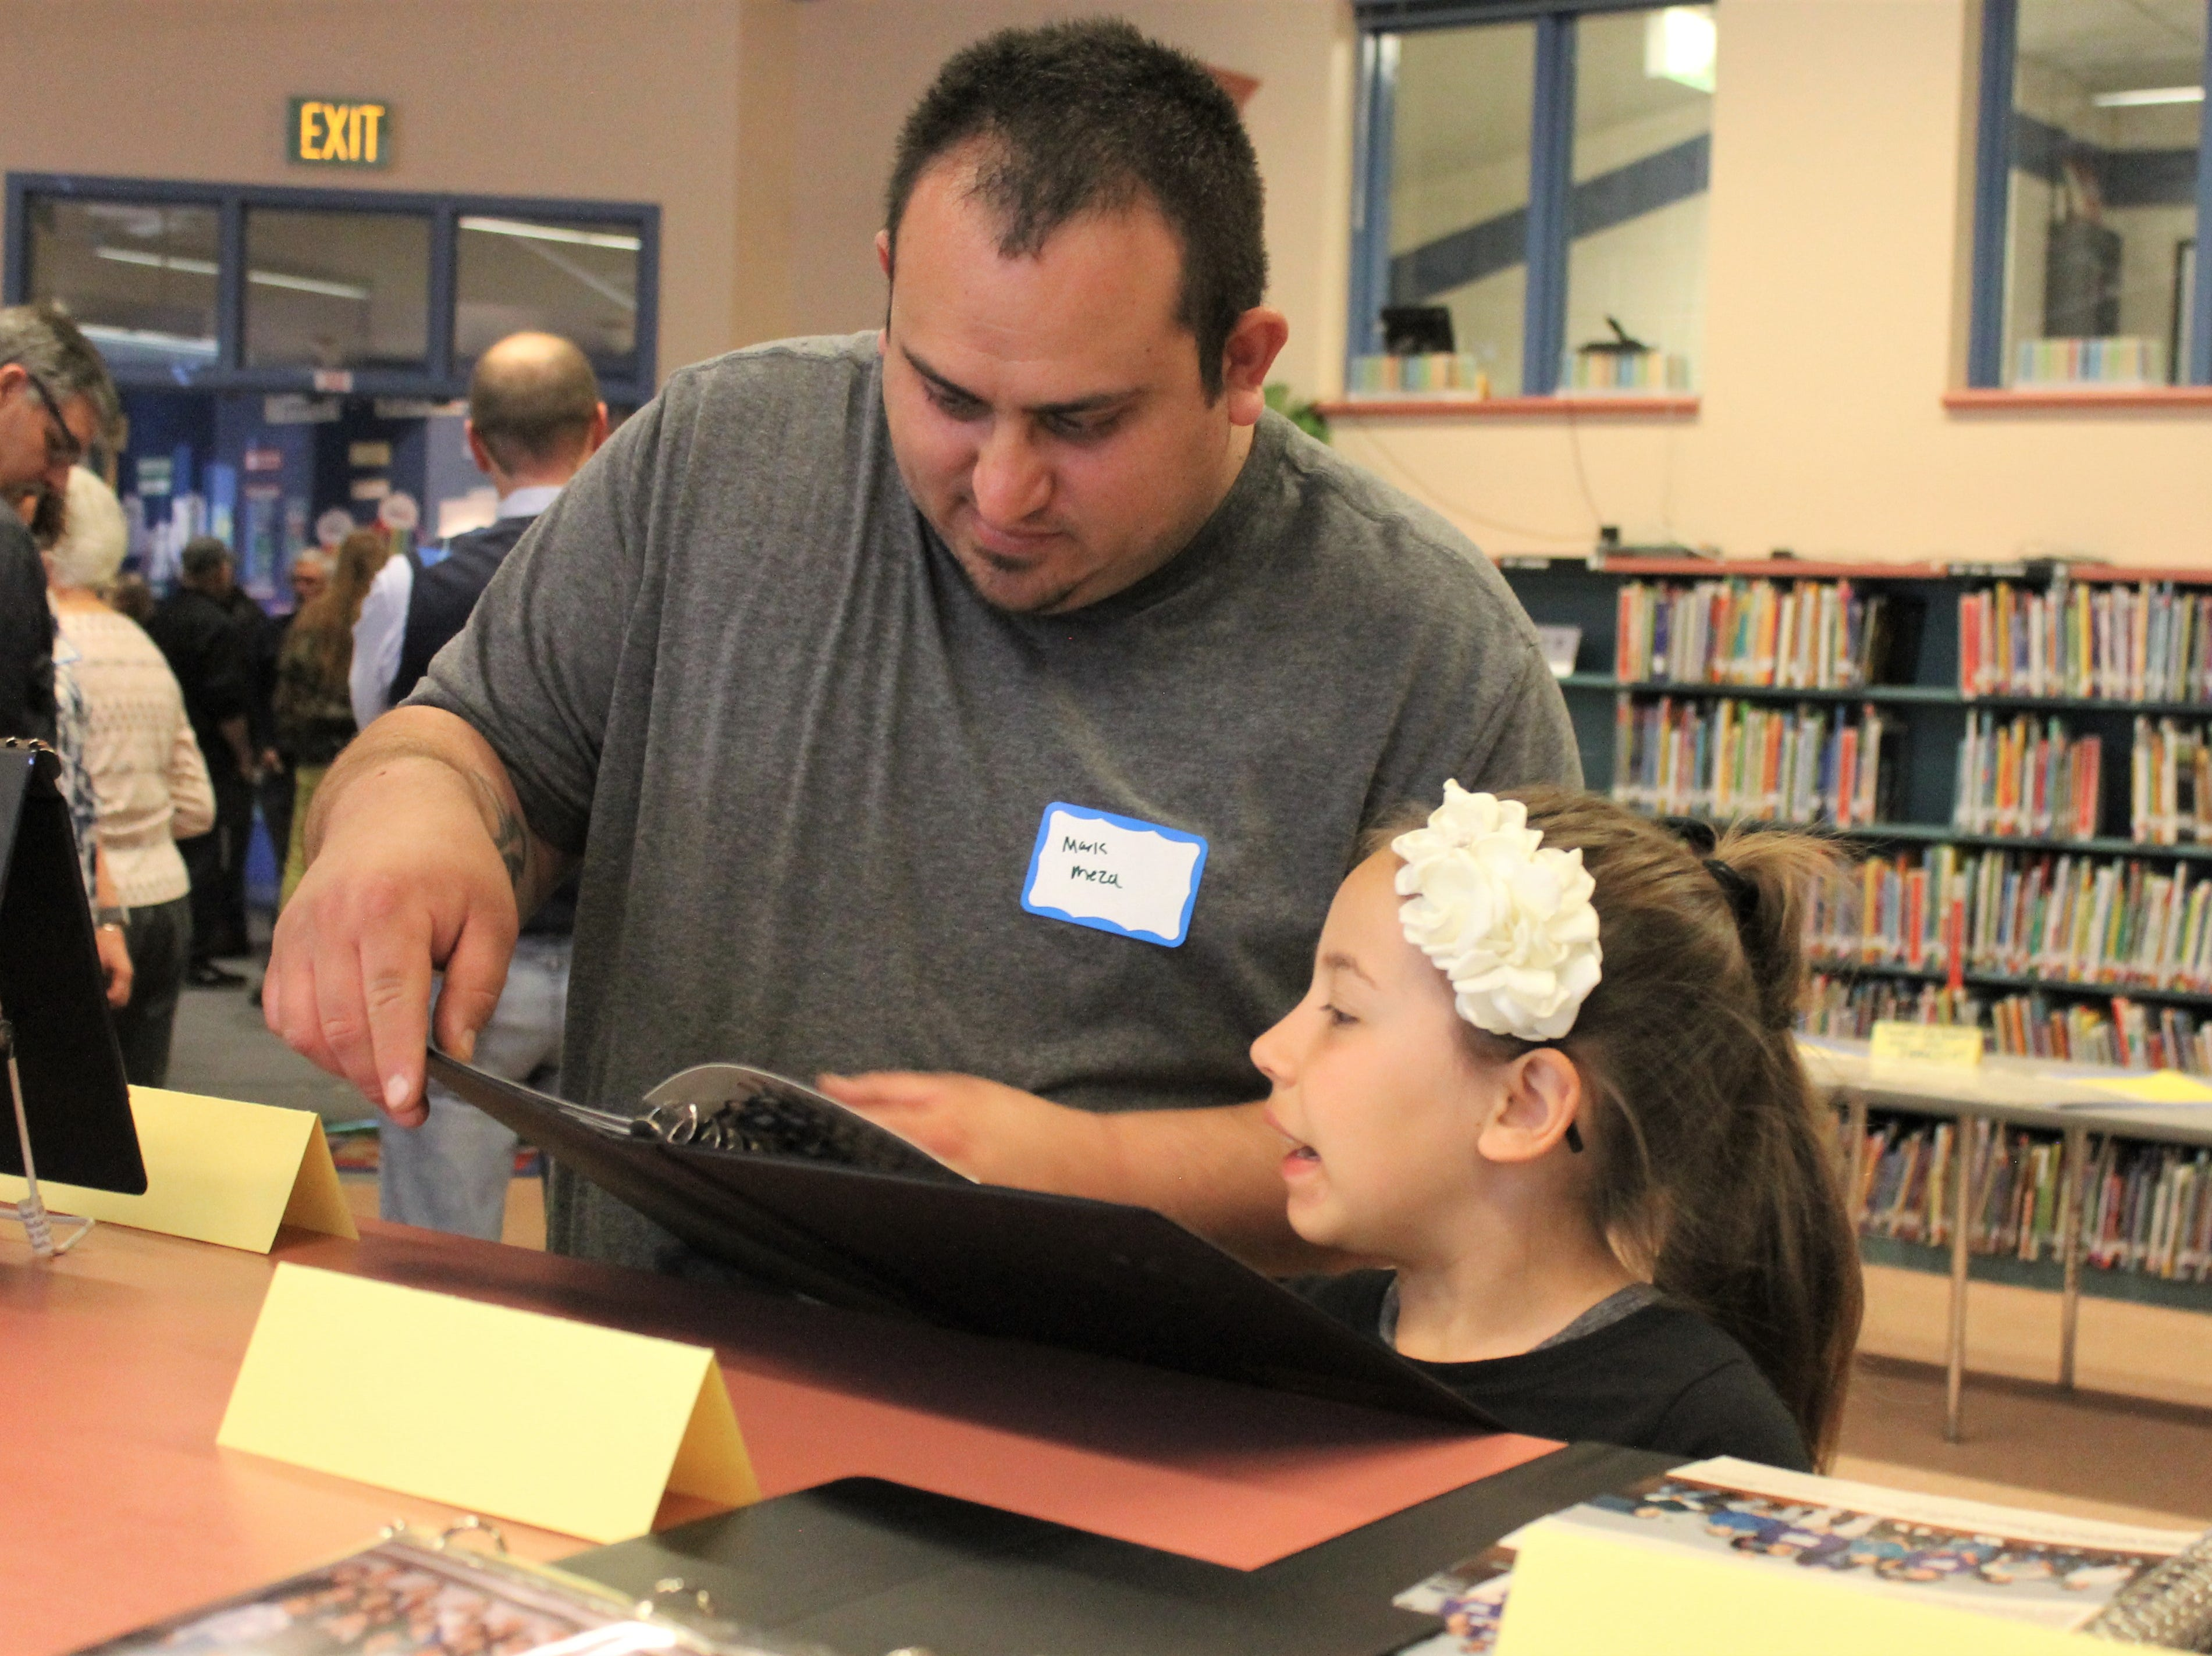 Mark Meza points out old photos of him as a student at Timnath Elementary School to his daughter, Jesselin Stankus, 8. Timnath Elementary School celebrated its 100th anniversary Saturday, April 27, 2019.